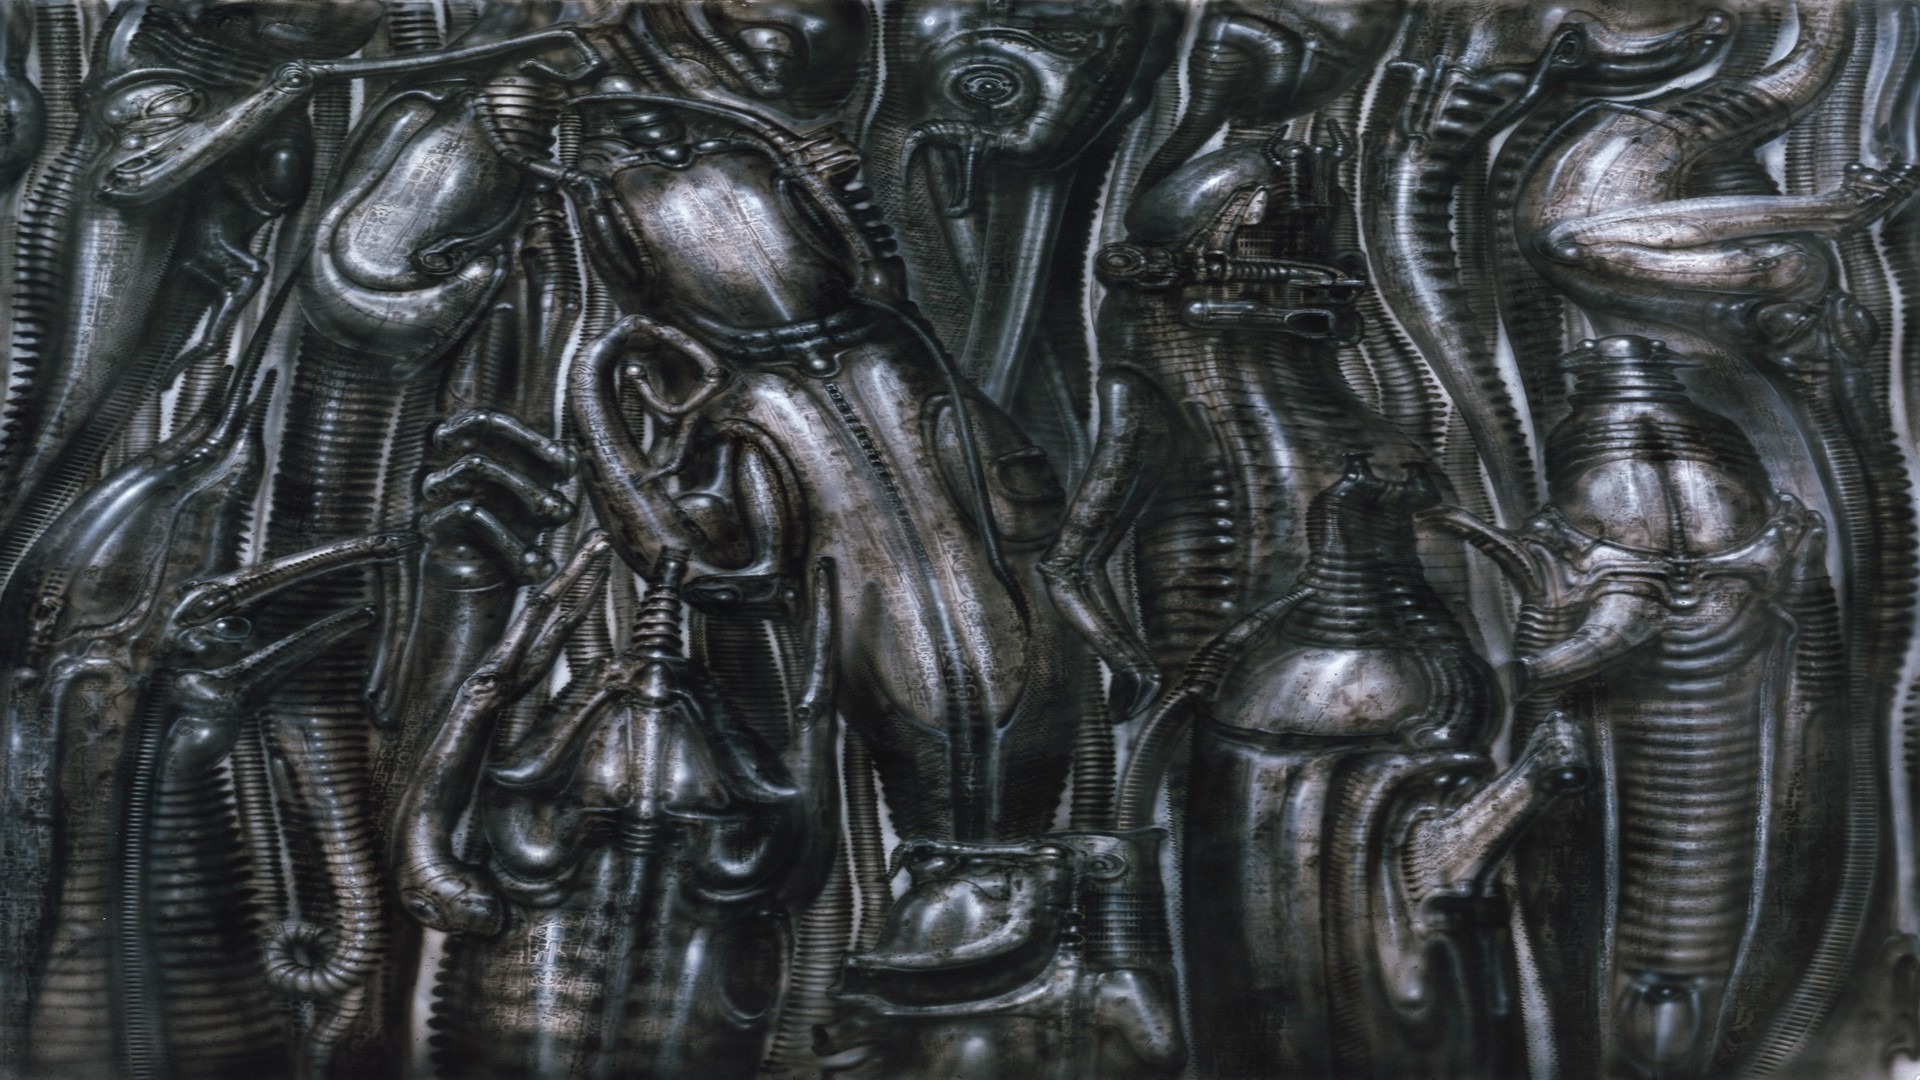 hr giger wallpaper 1920x1080 (67+ images)